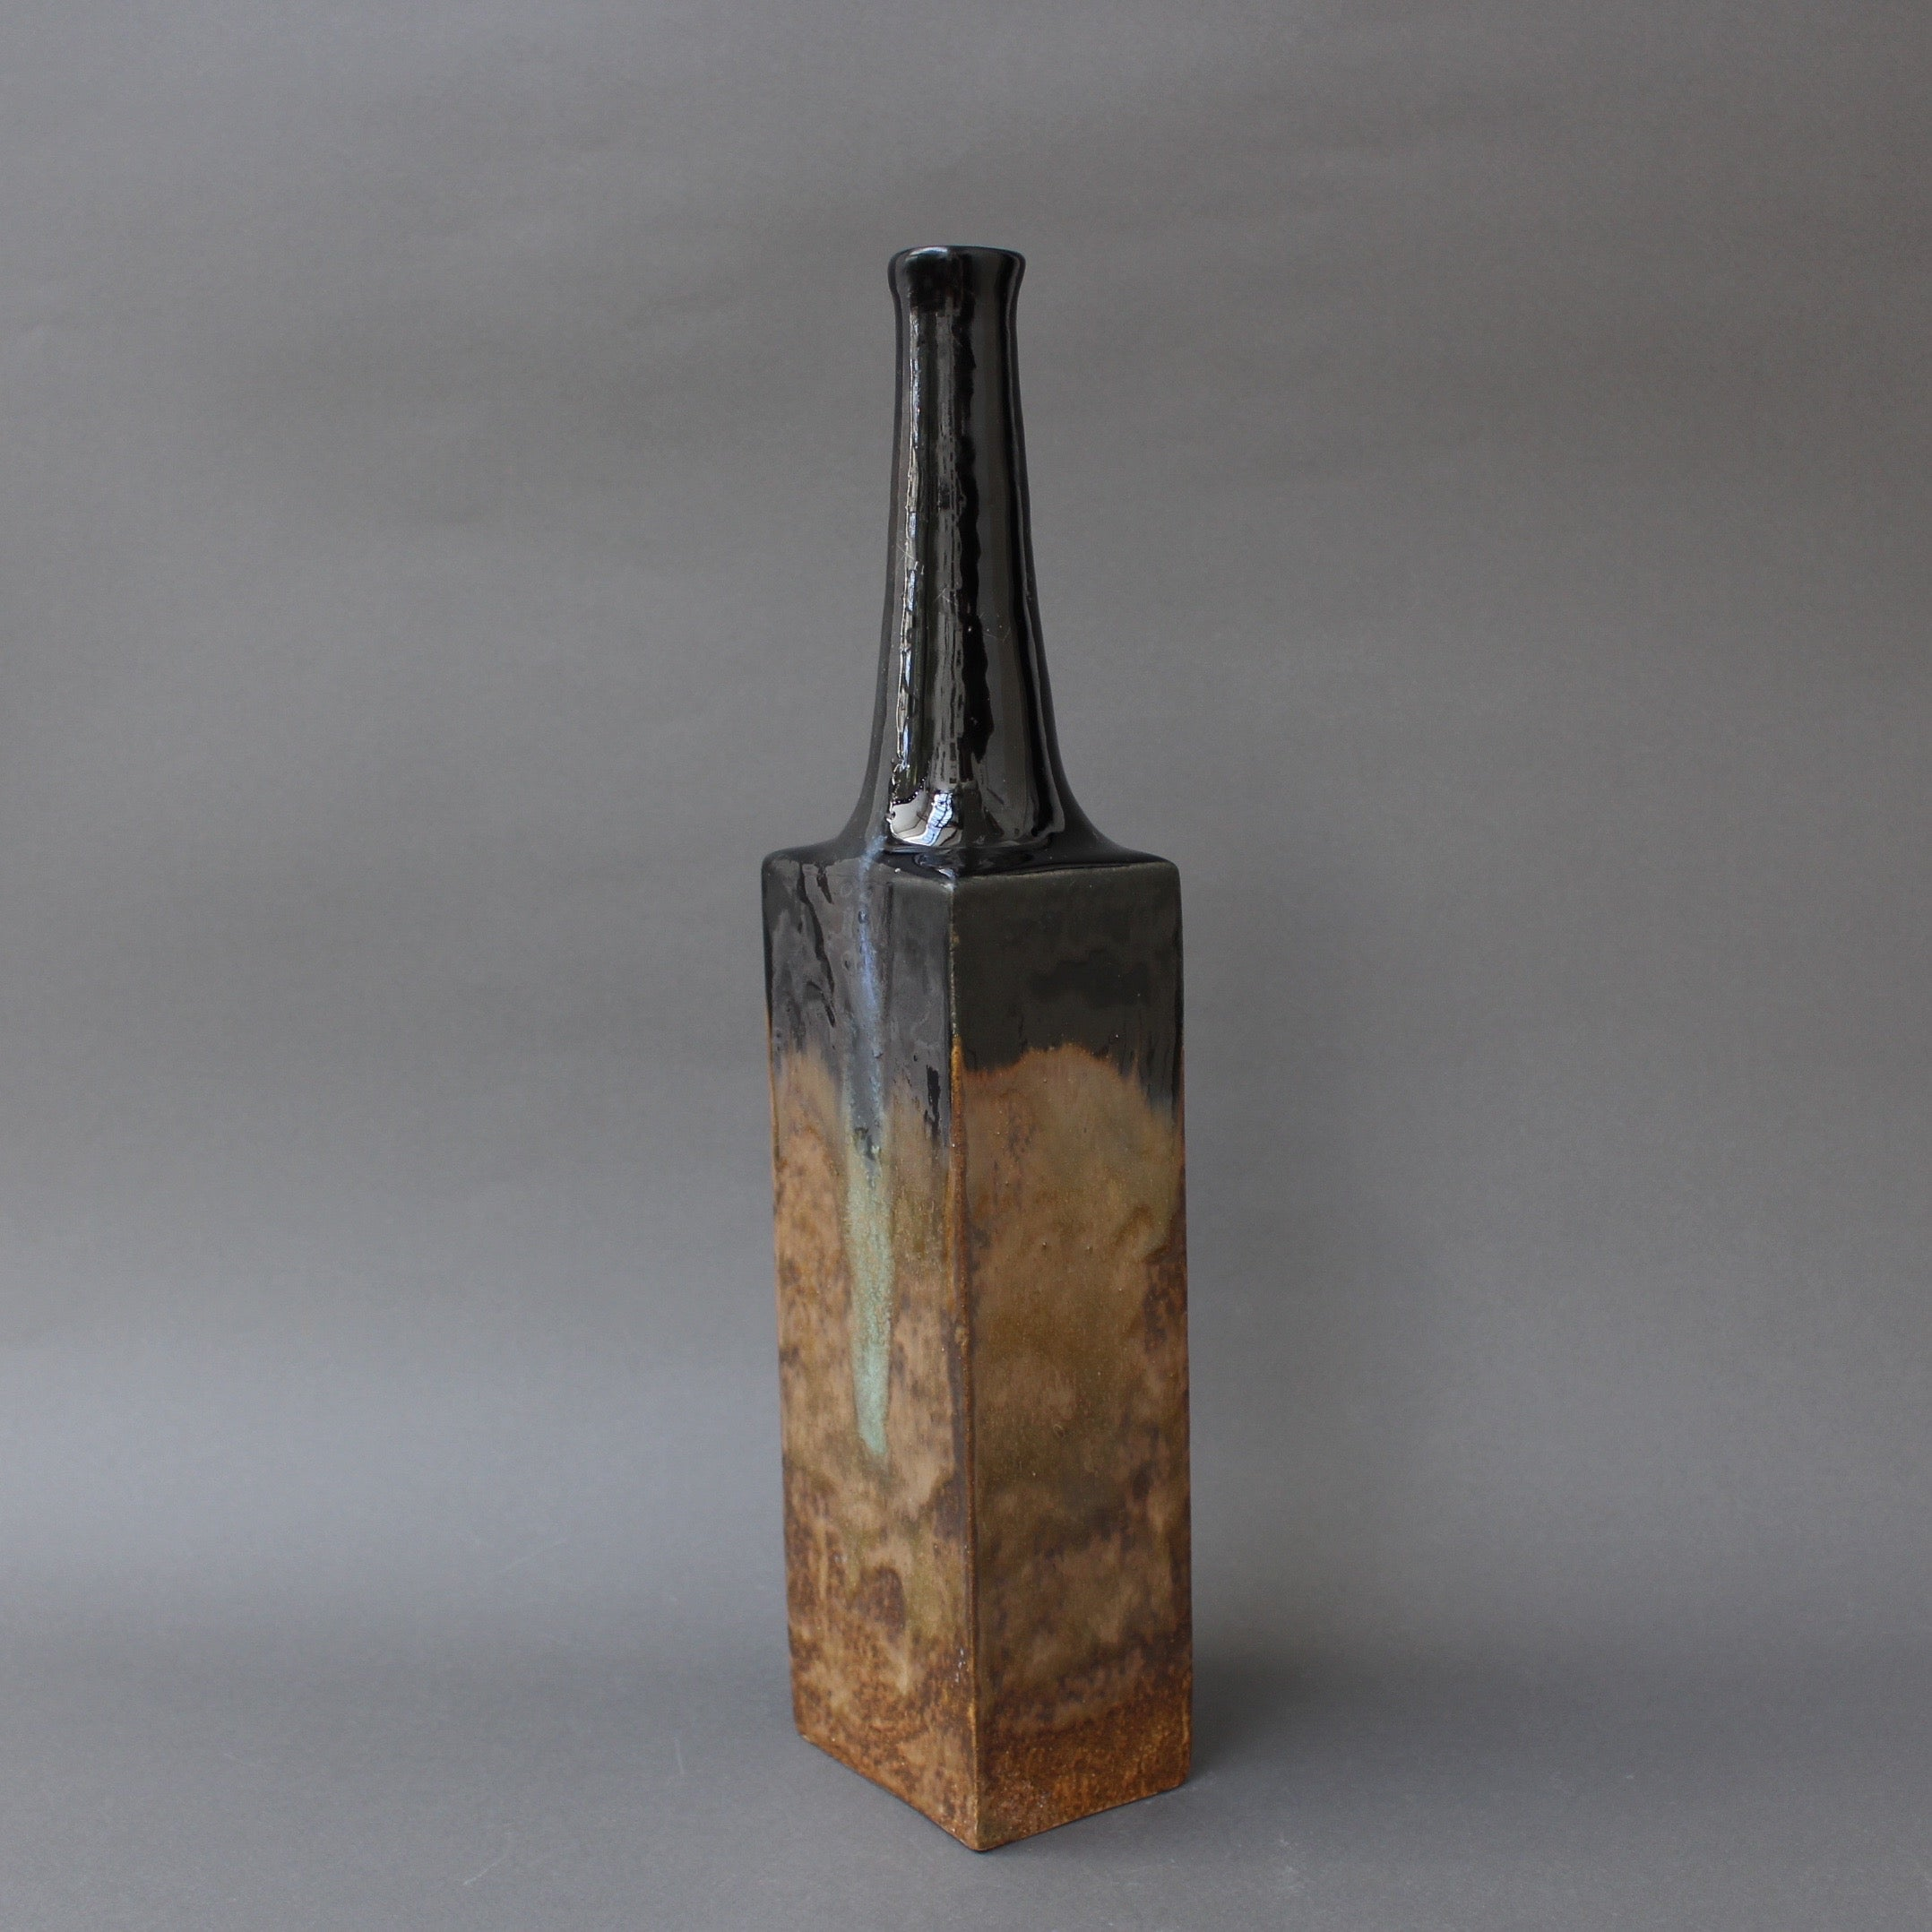 Ceramic Vase by Bruno Gambone (circa 1980s)